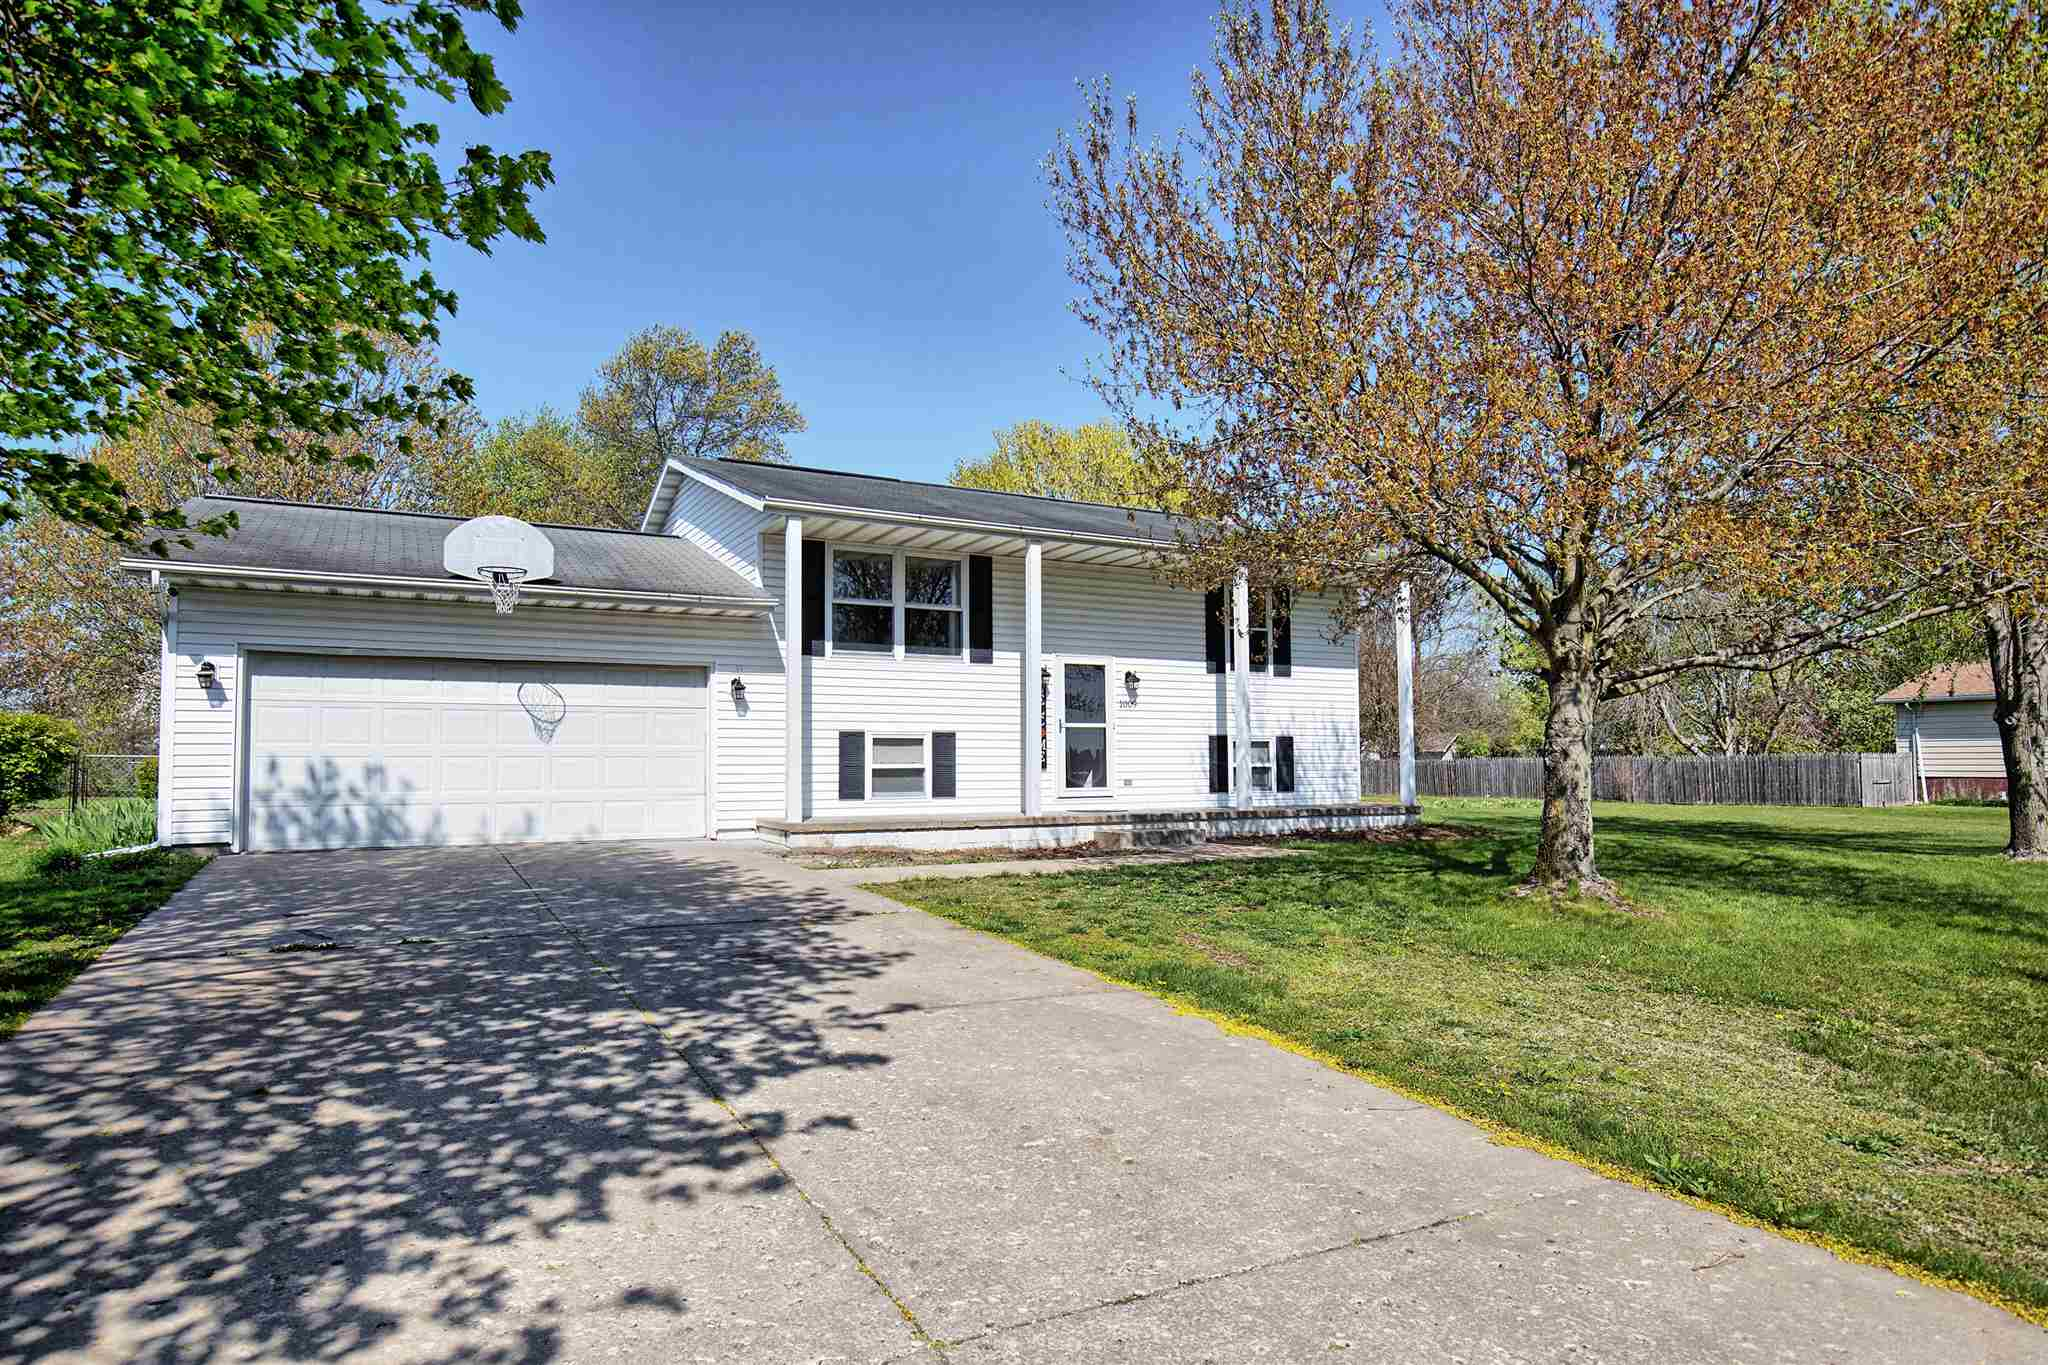 1009 S WASHINGTON Property Photo - Manito, IL real estate listing